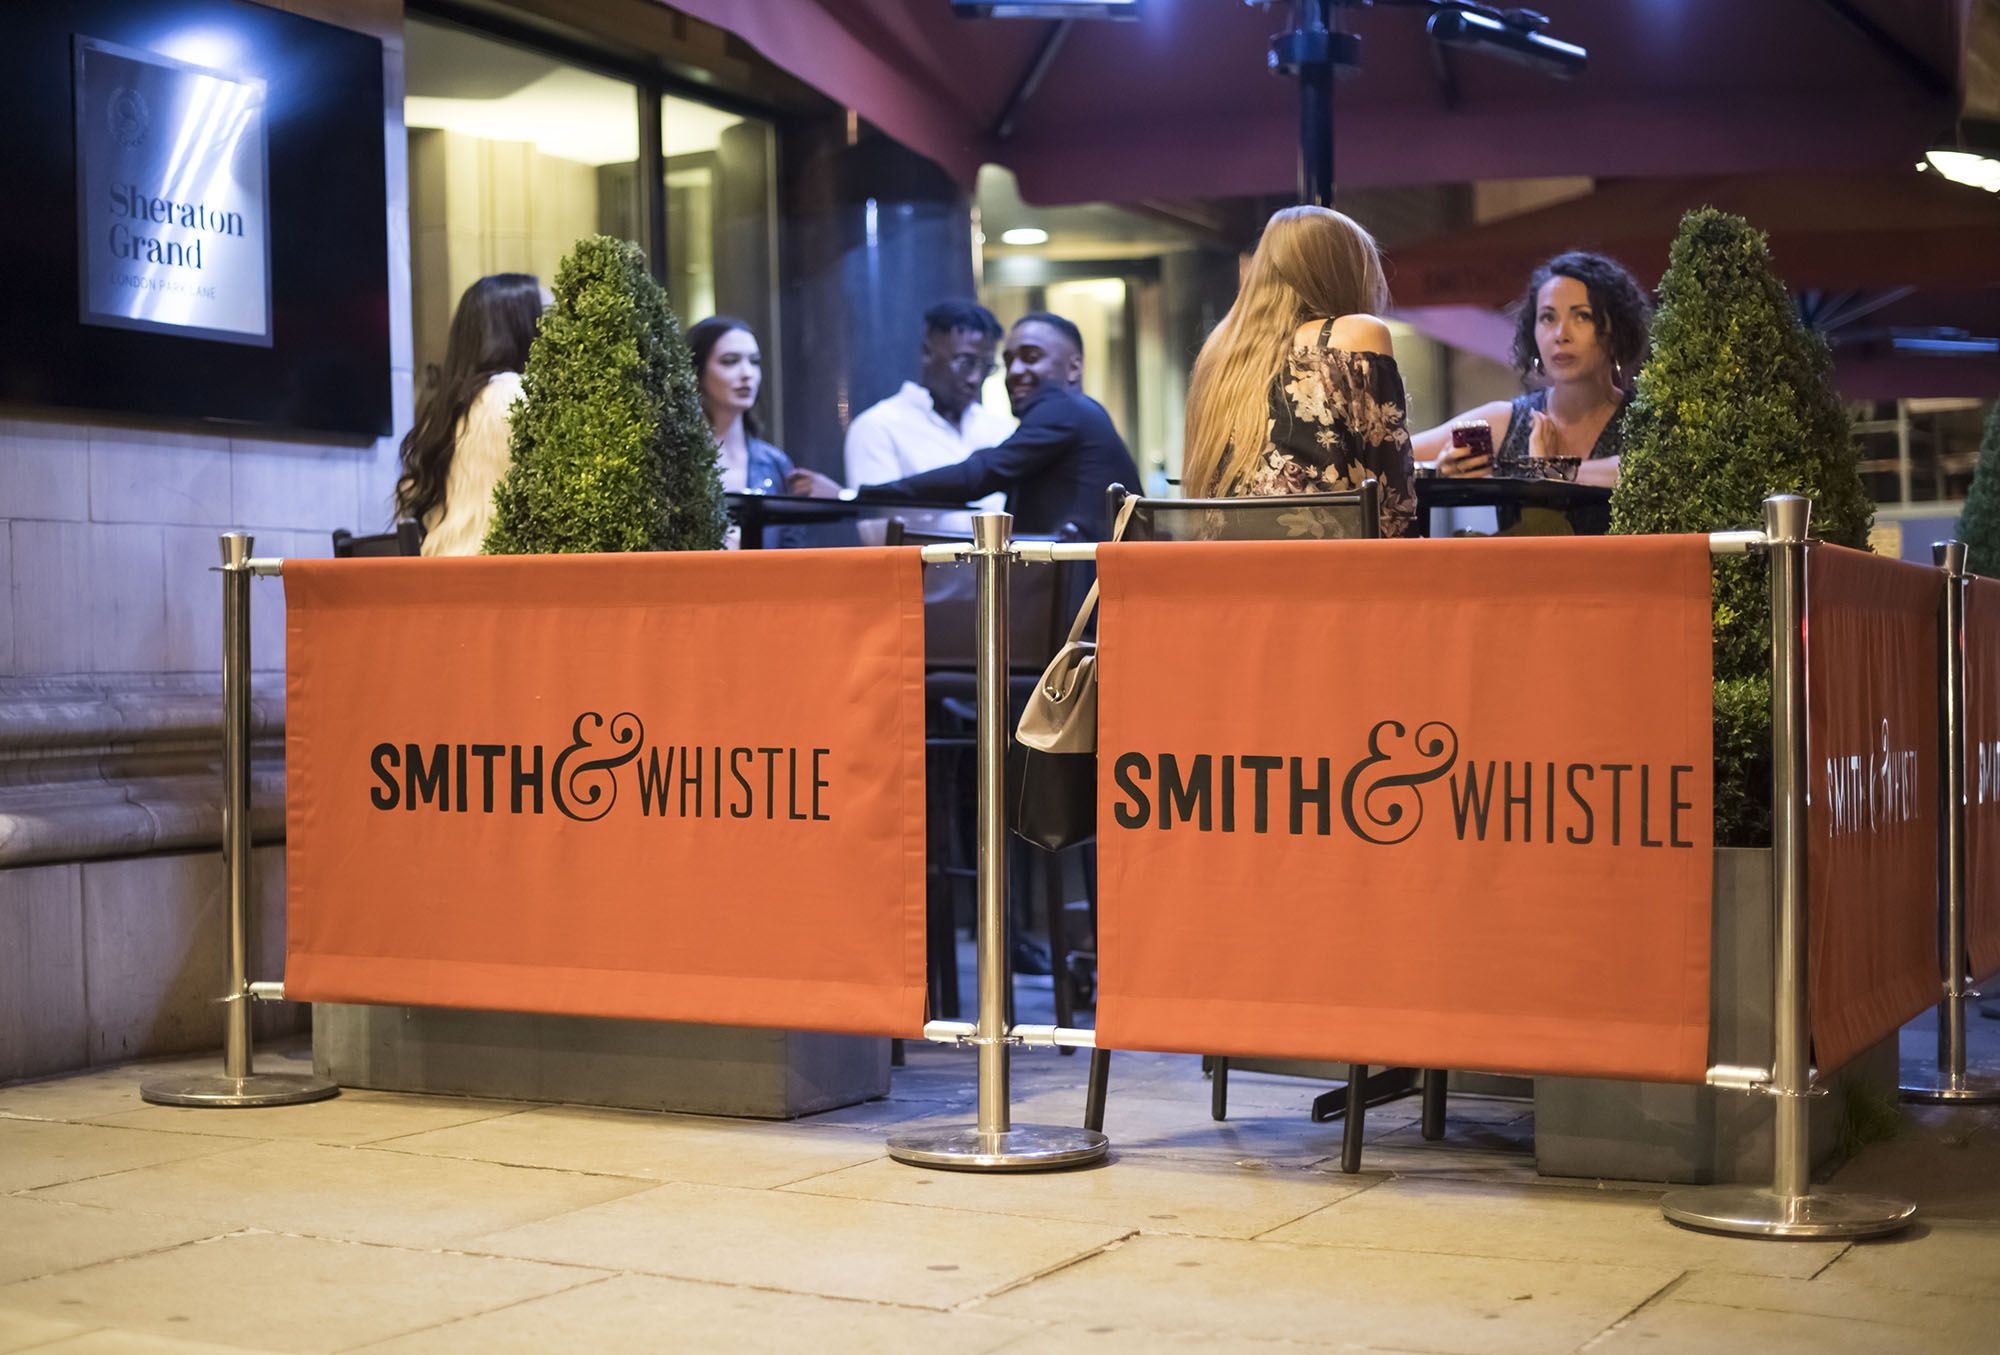 Christmas Work Party in Mayfair | Smith and Whistle